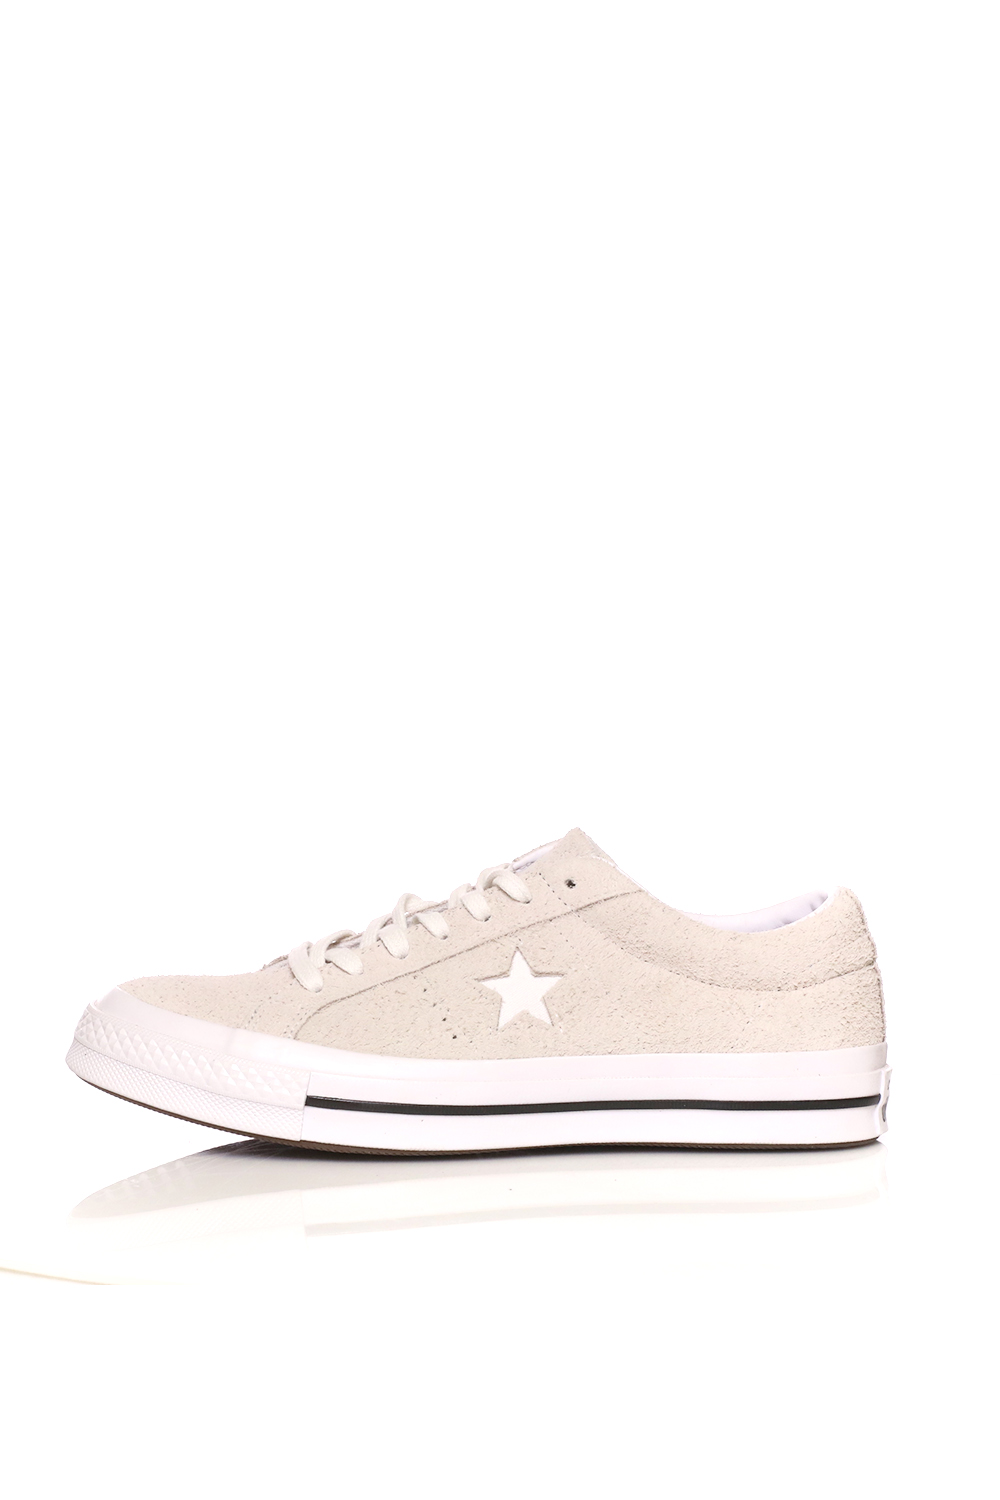 -40% Collective Online CONVERSE – Unisex sneakers CONVERSE One Star λευκά 9c8d745c56c